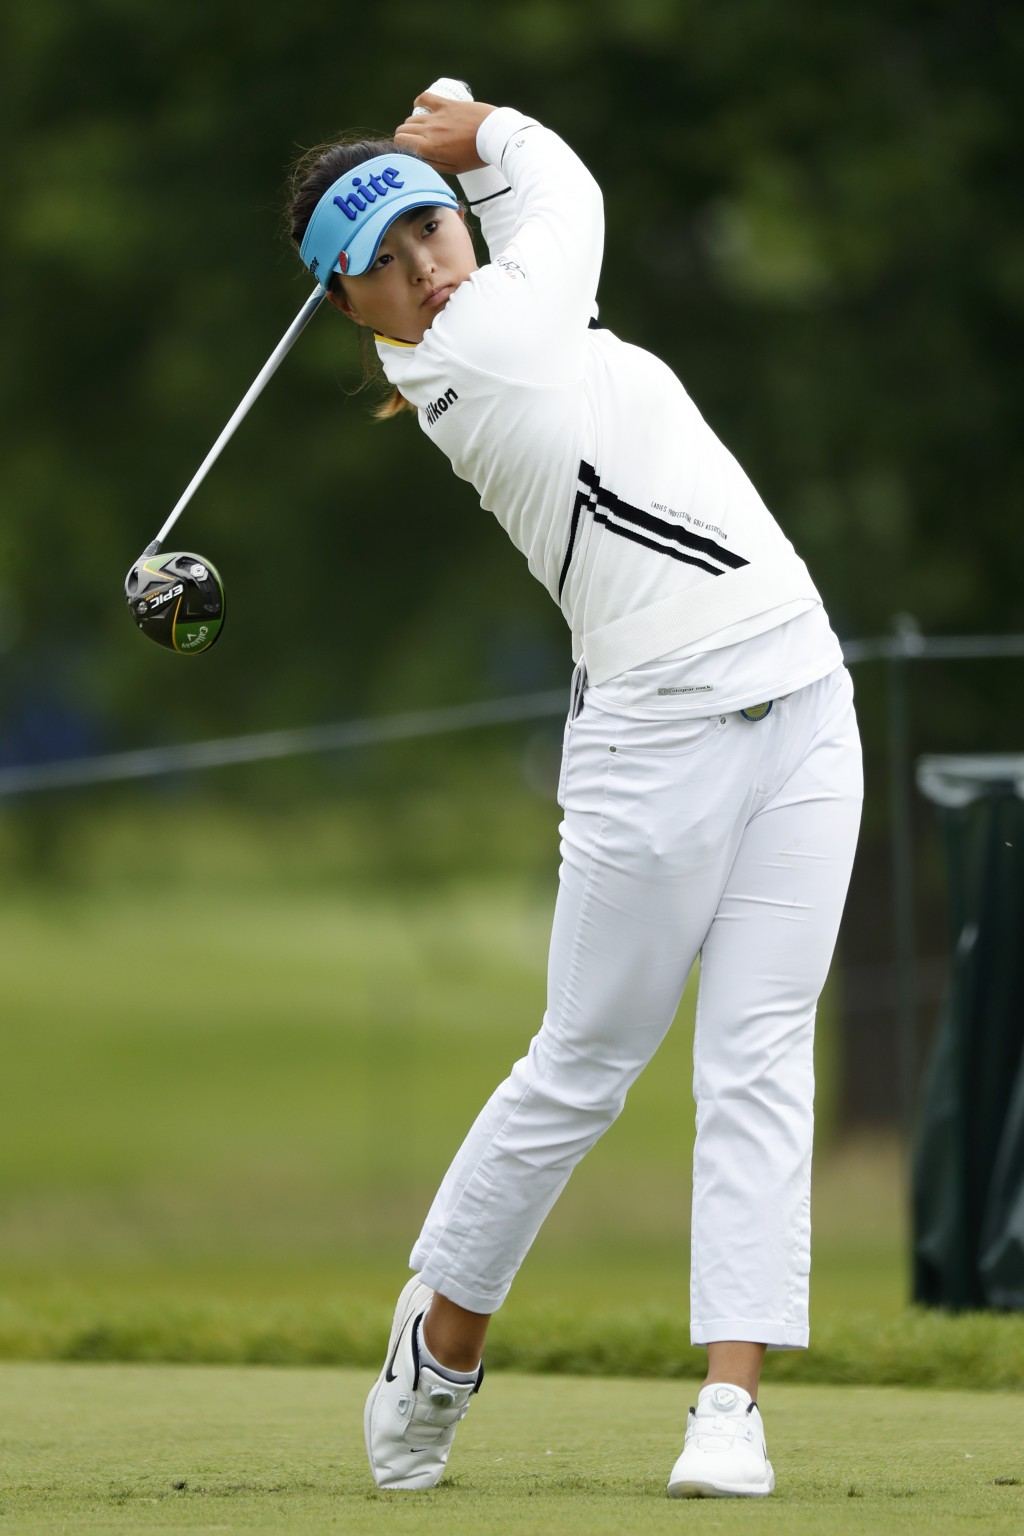 Jin Young Ko, of South Korea, hits off the 12th tee during the second round of the KPMG Women's PGA Championship golf tournament, Friday, June 21, 201...